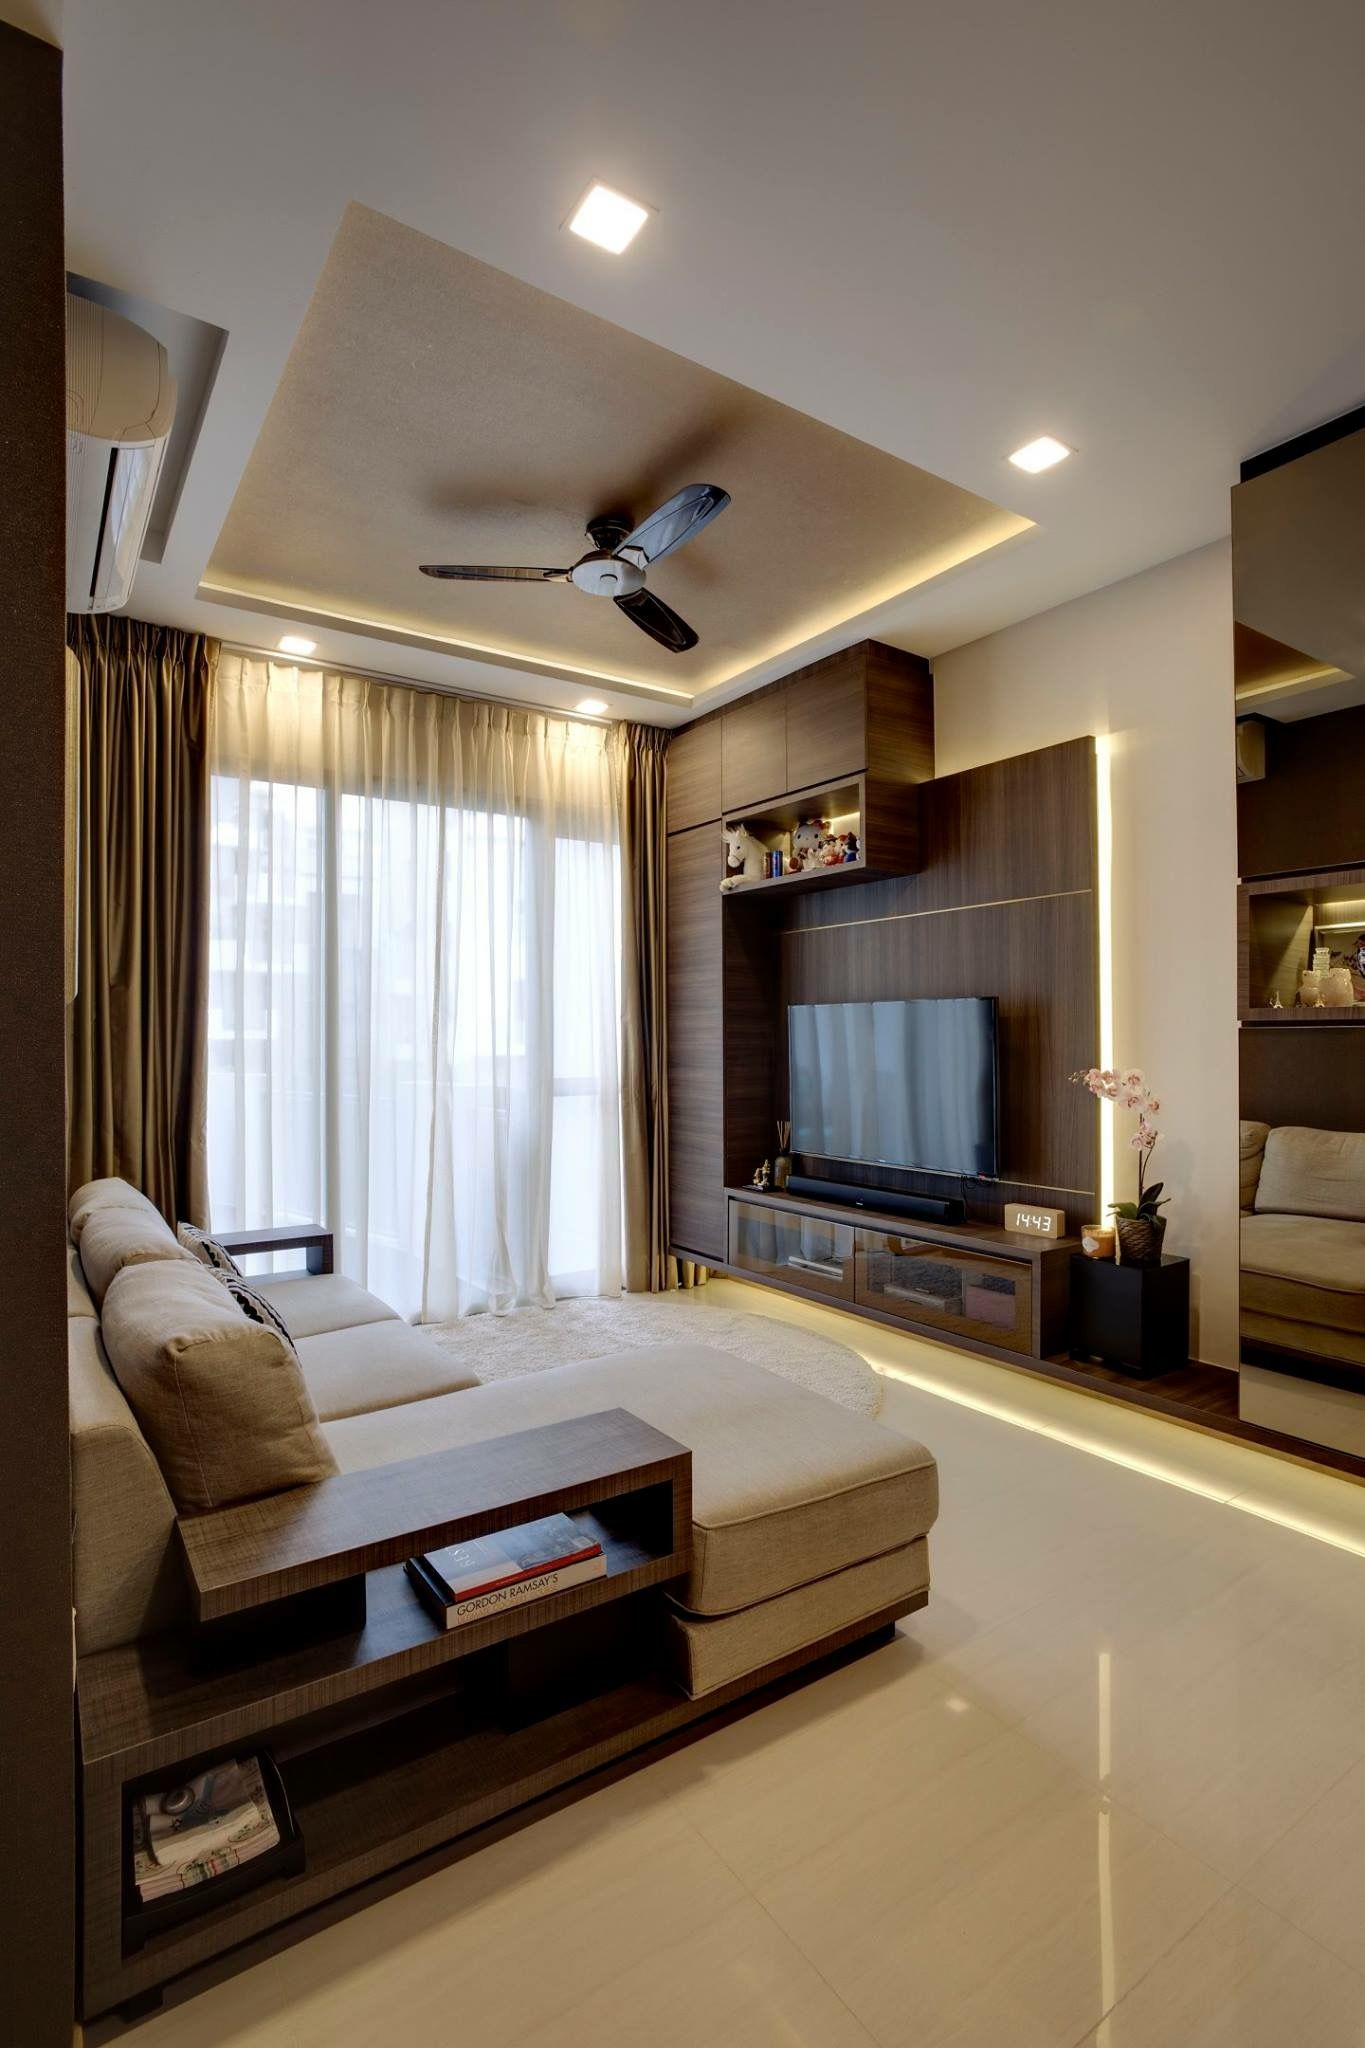 Small Condo Living Room Design: Sample For: 1) Lighting + Fan Placement 2) Ceiling Height